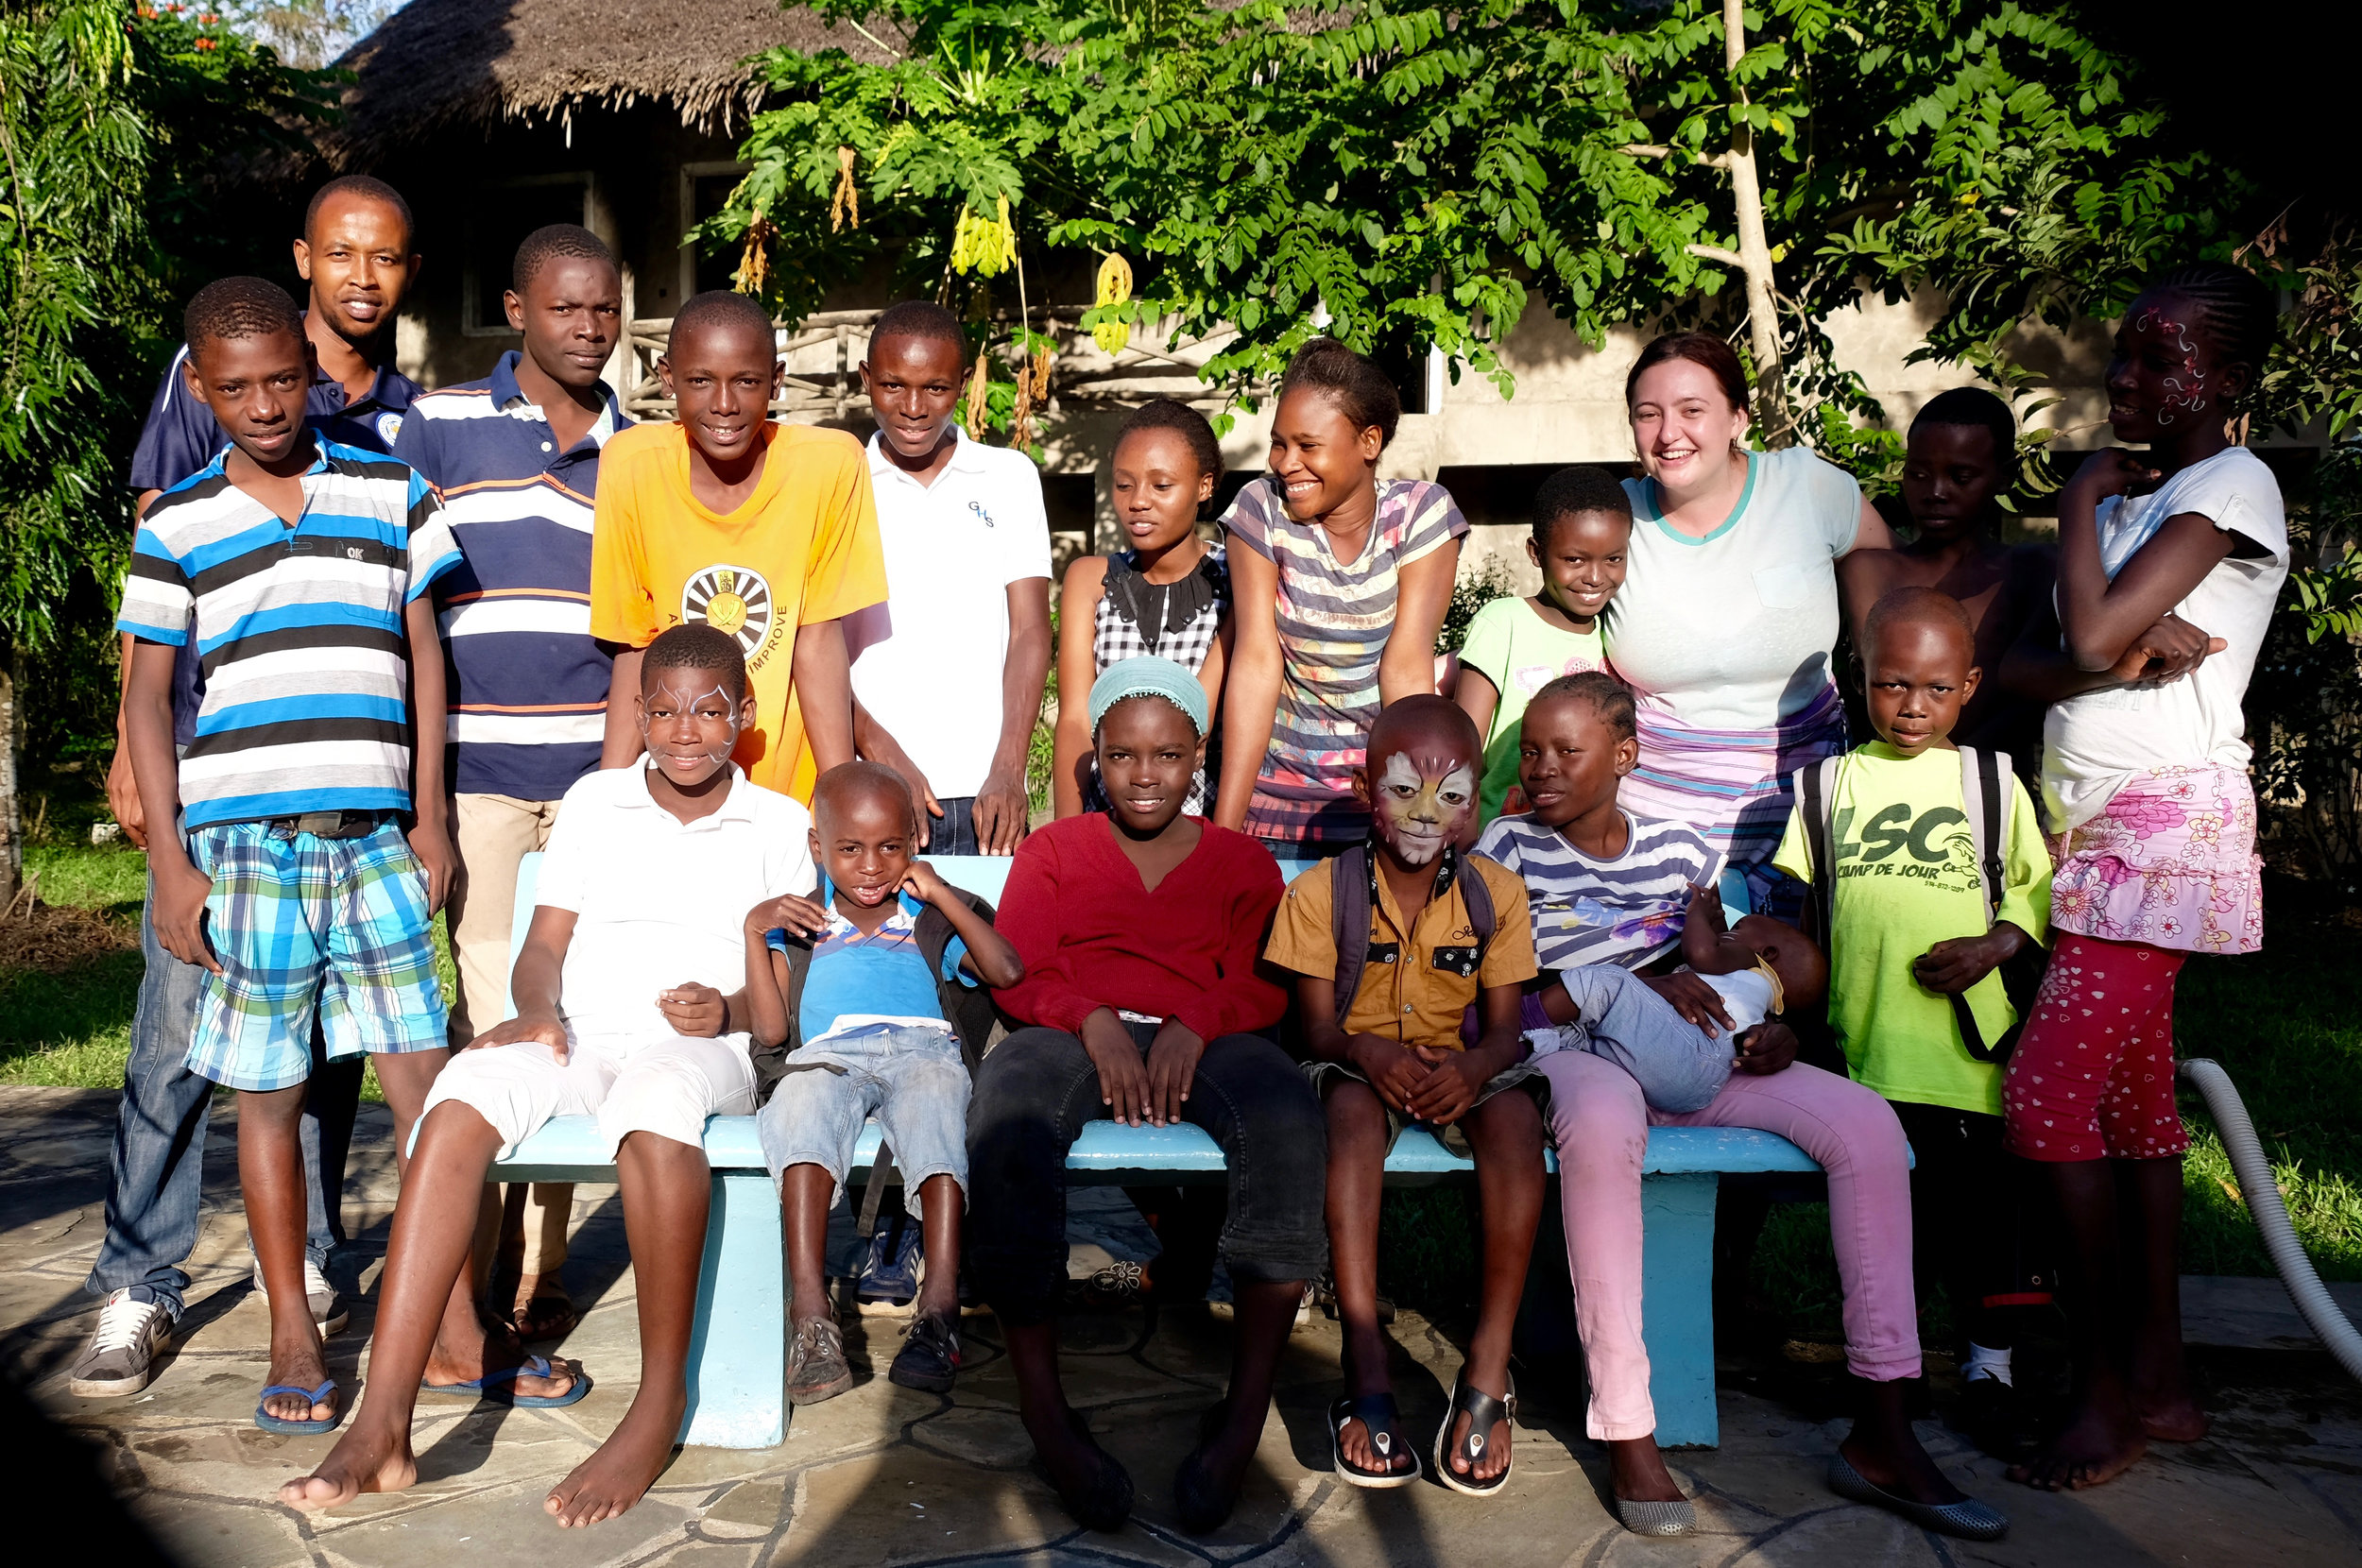 The Milele Family